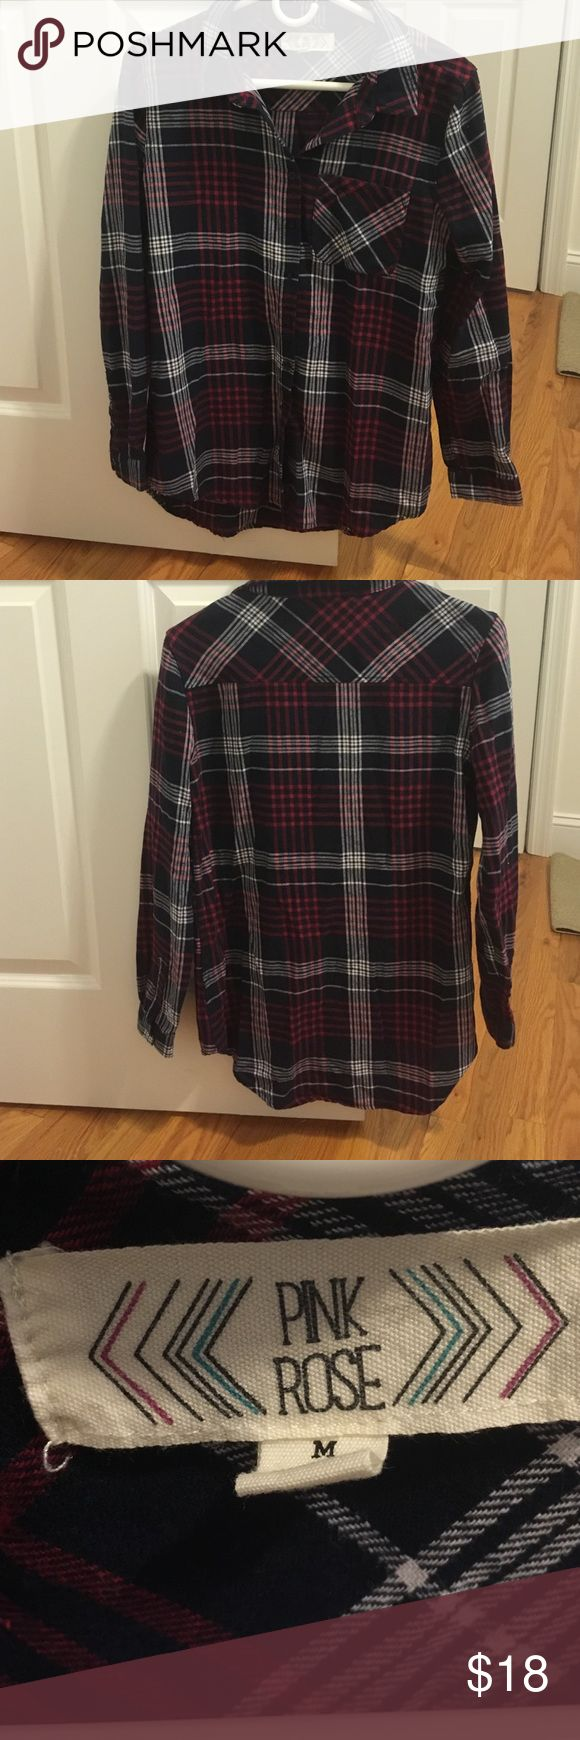 Women's plaid shirt Red, white and navy. Like new, pocket on front! Button down Tops Button Down Shirts